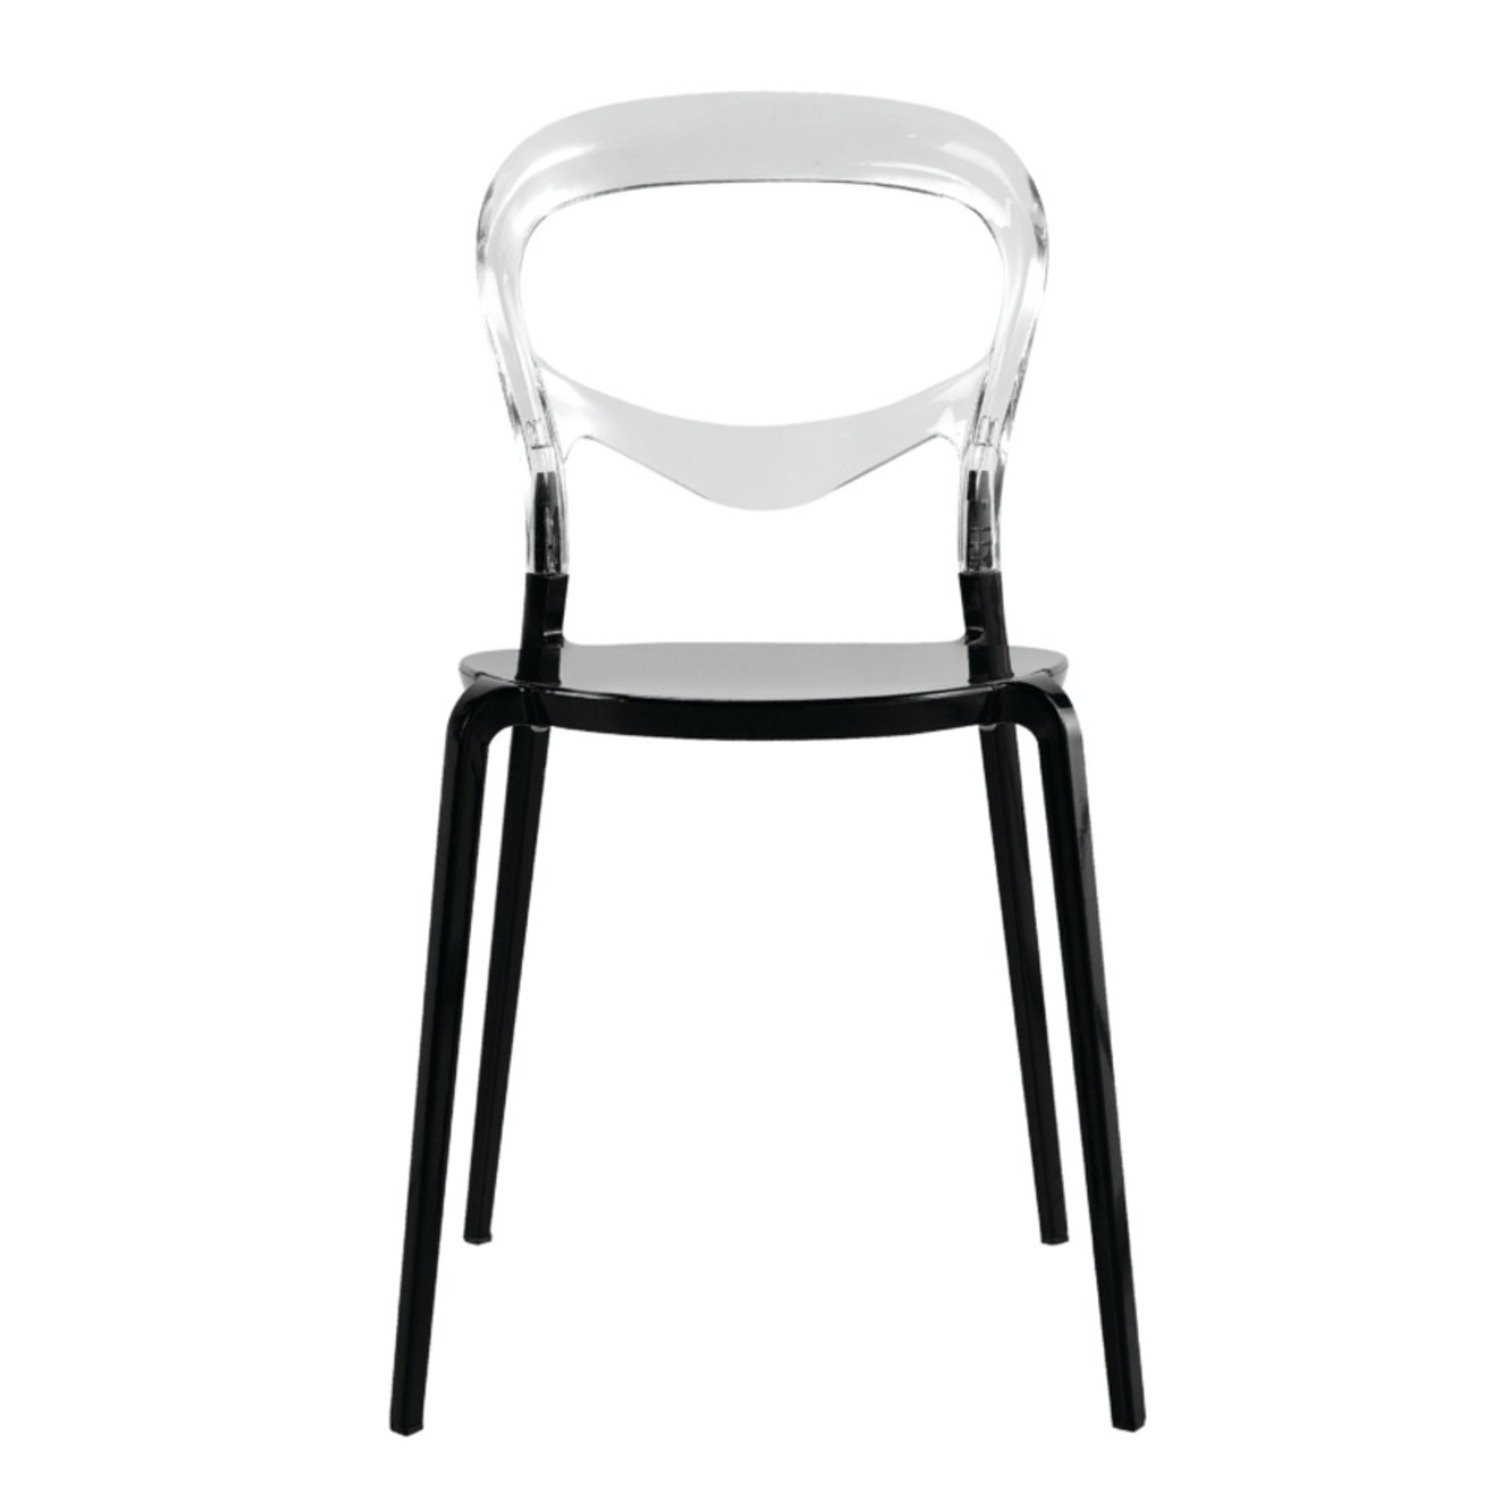 Dining Chair In Transparent Acrylic Finish - image-1